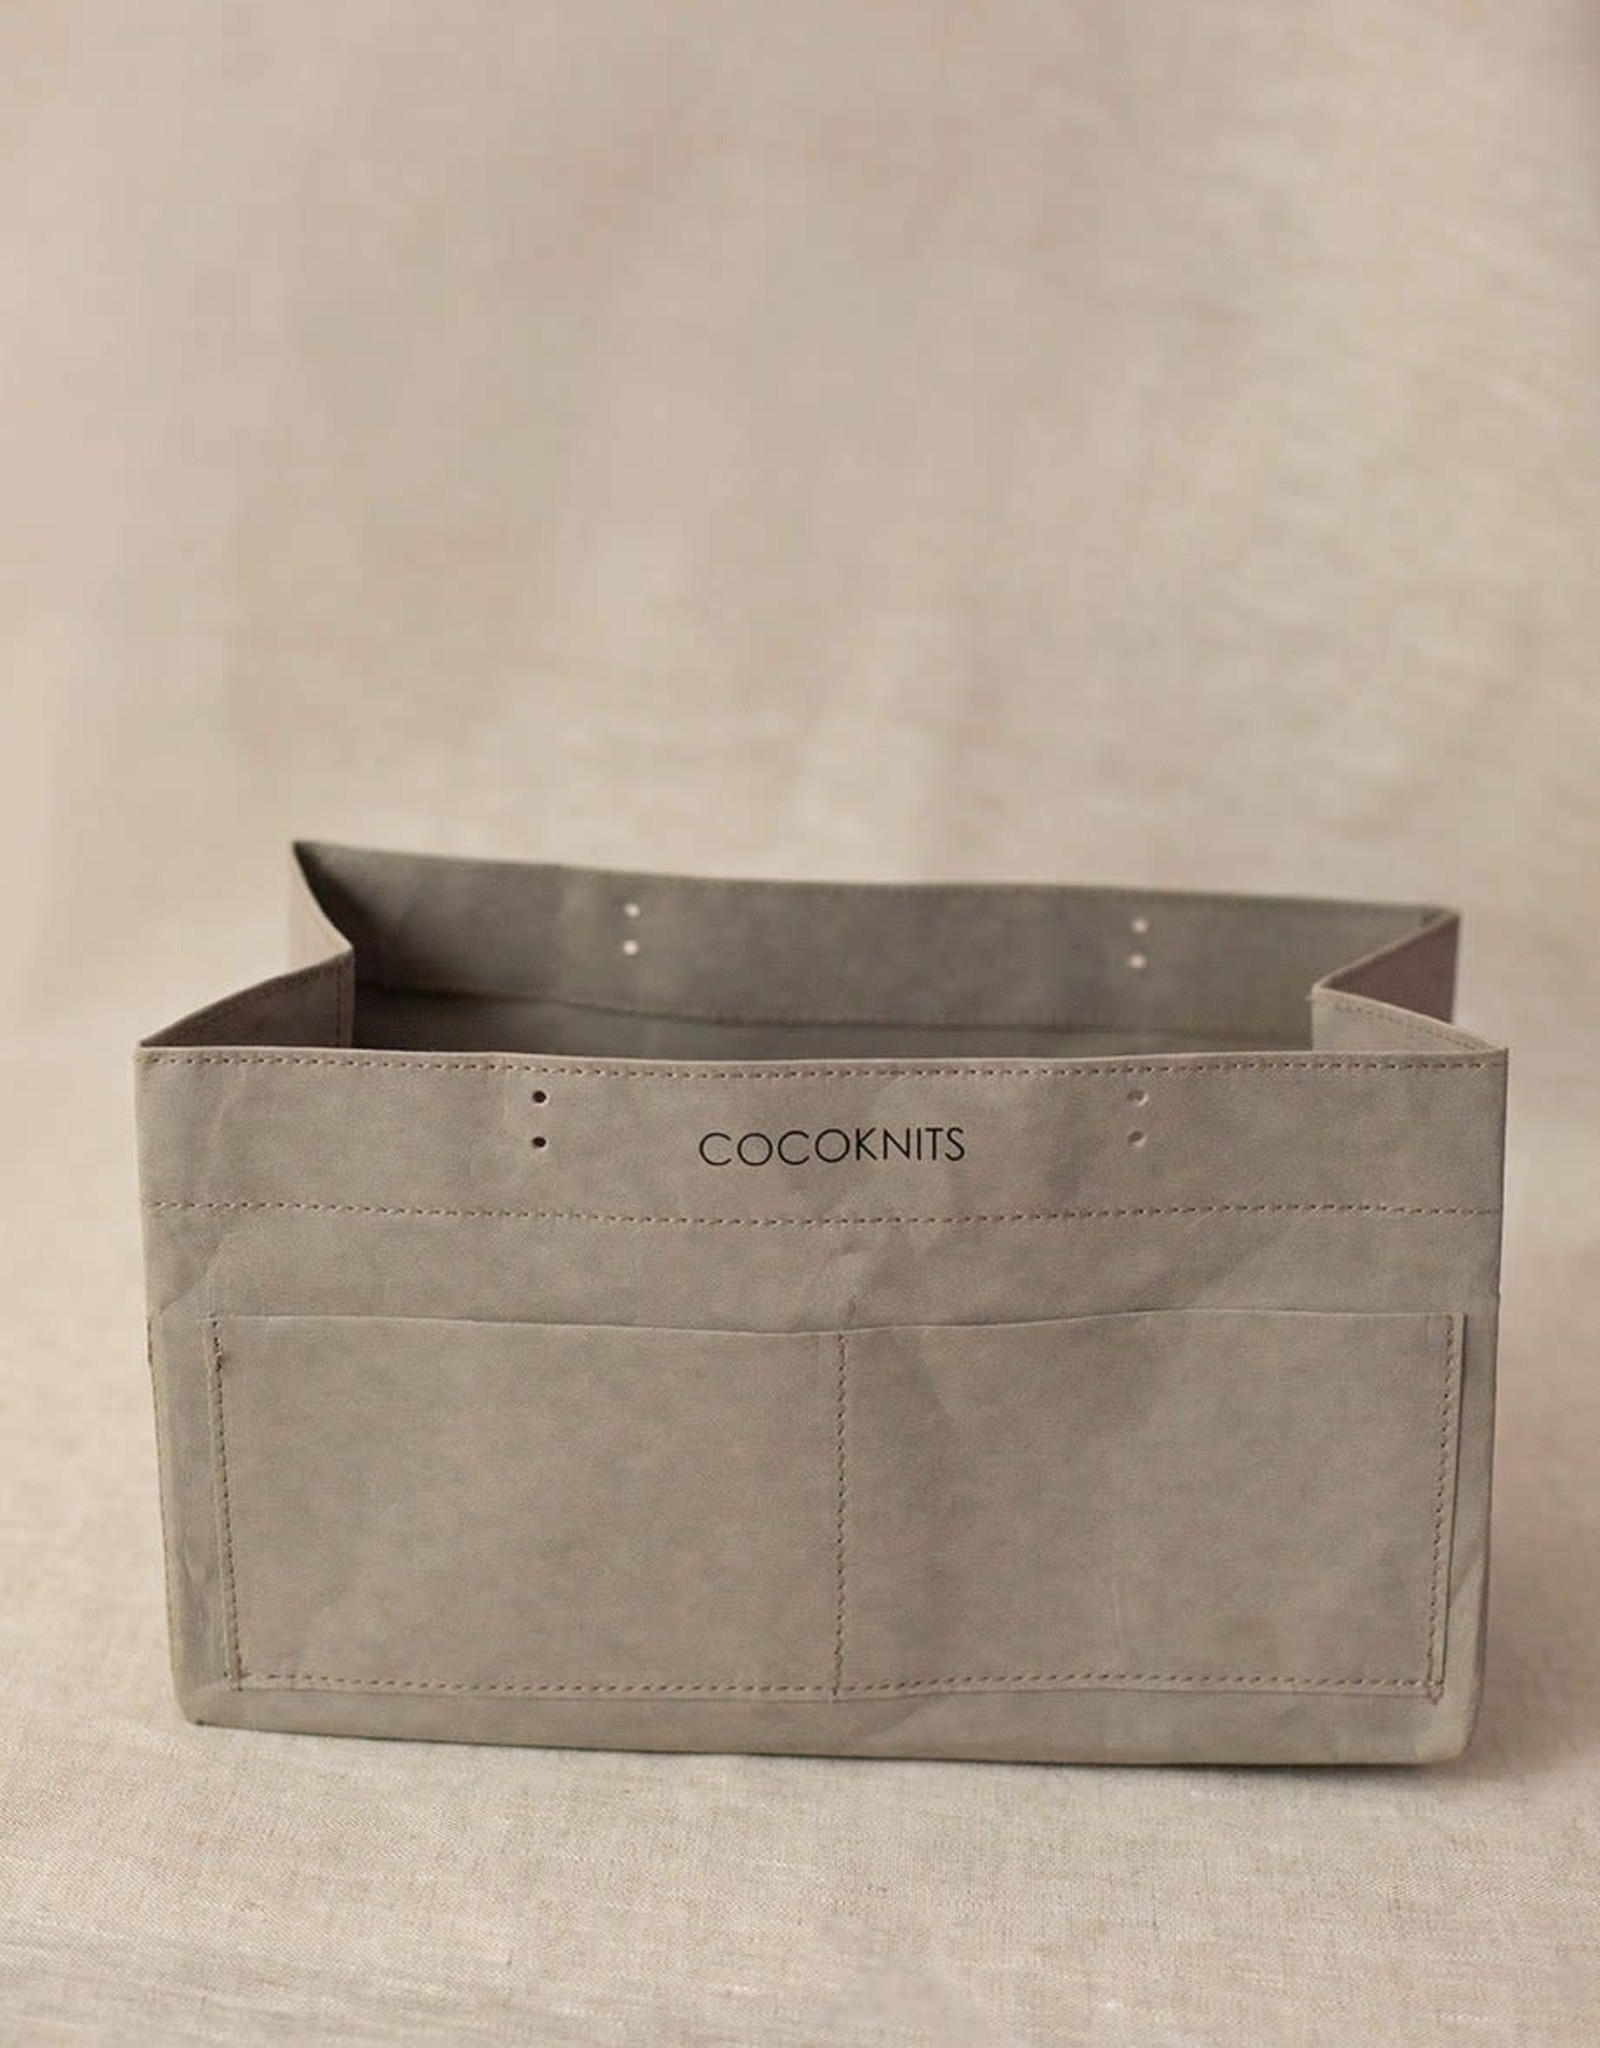 Coco Knits Coco Knits Craft Caddy with Leather Handle Kit